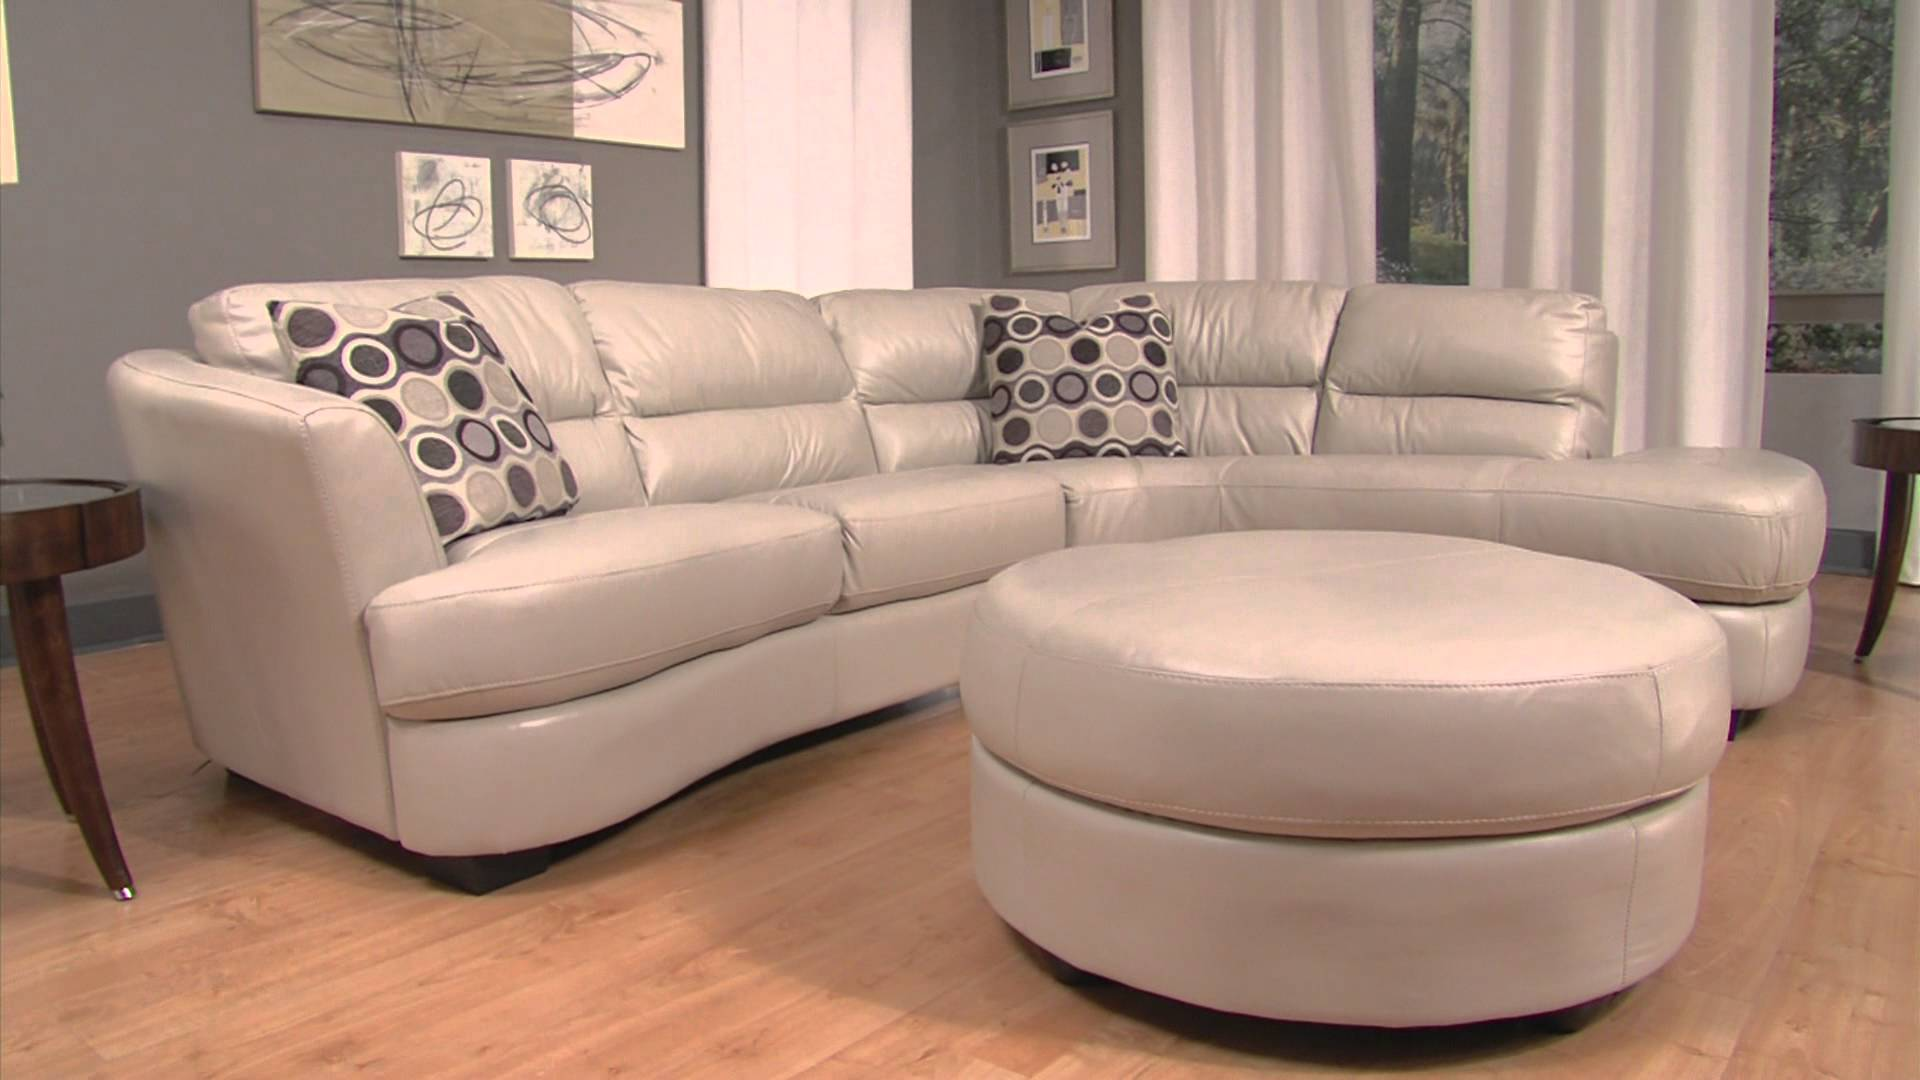 Costco Leather Sectional | Costco Leather Sectional | Leather Sofa and Loveseat